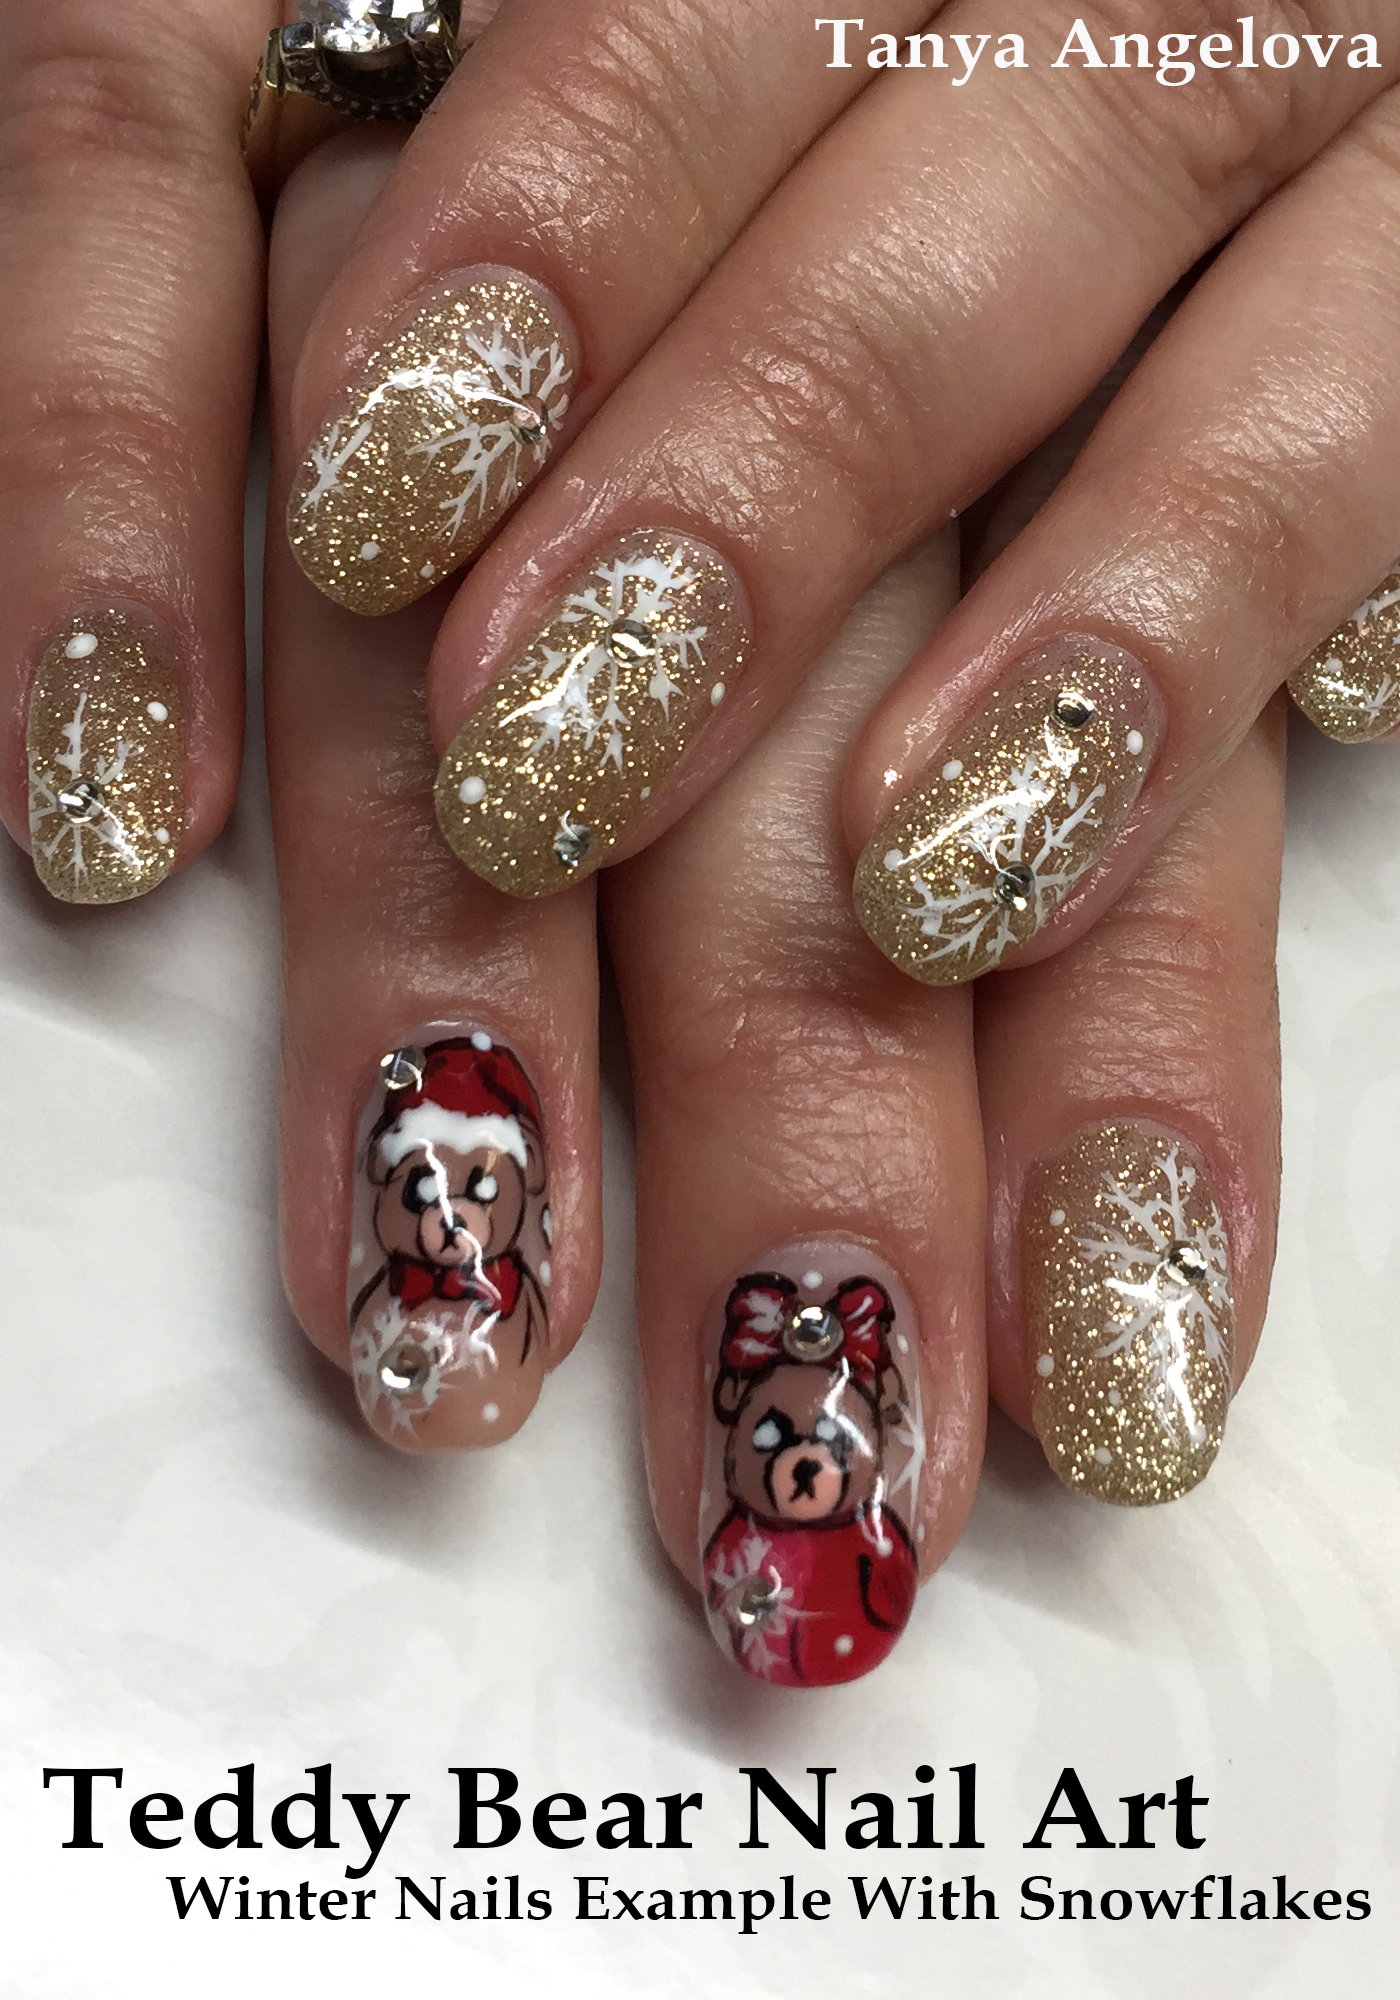 Teddy Bear Nail Art - Winter Nails Example With Snowflakes